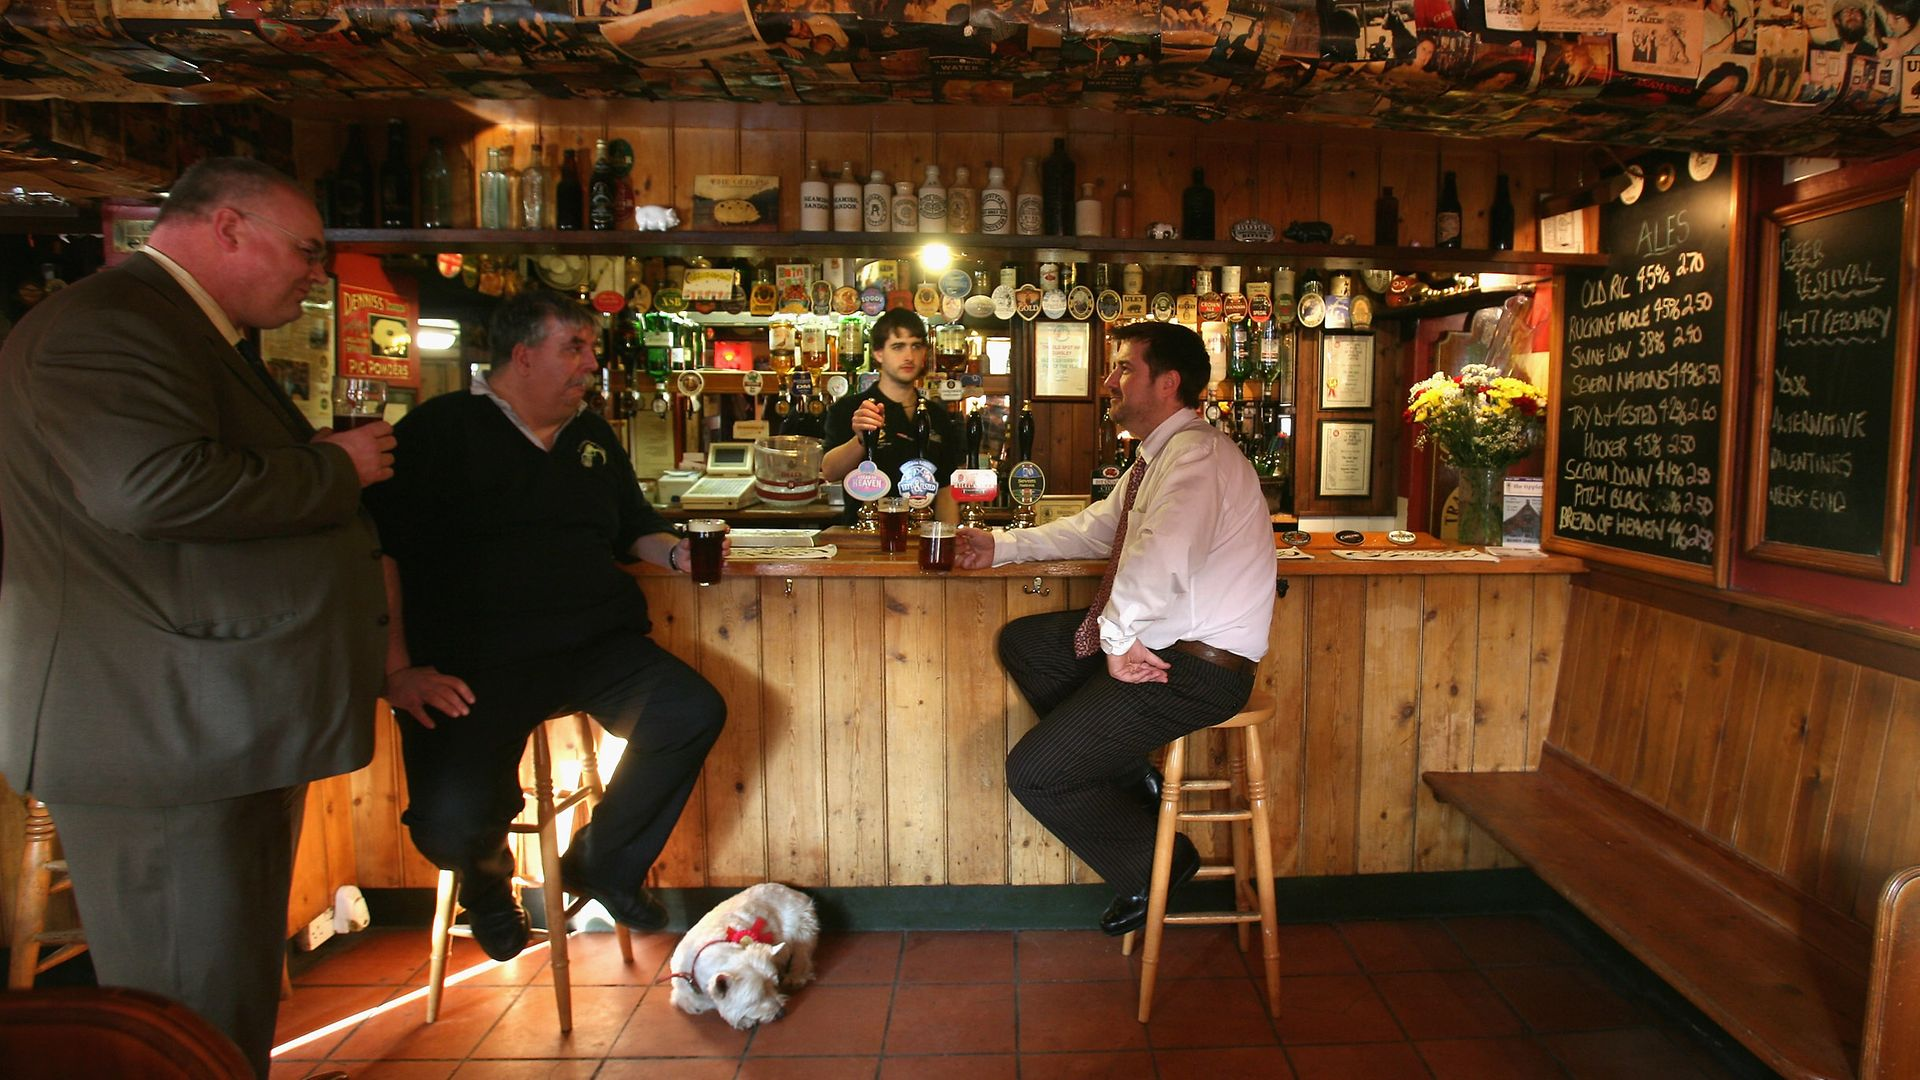 Long before lockdown was on the horizon, locals have a beer in The Old Spot Inn, in Dursley, a previous winner of CAMRA's Pub of the Year award - Credit: Getty Images